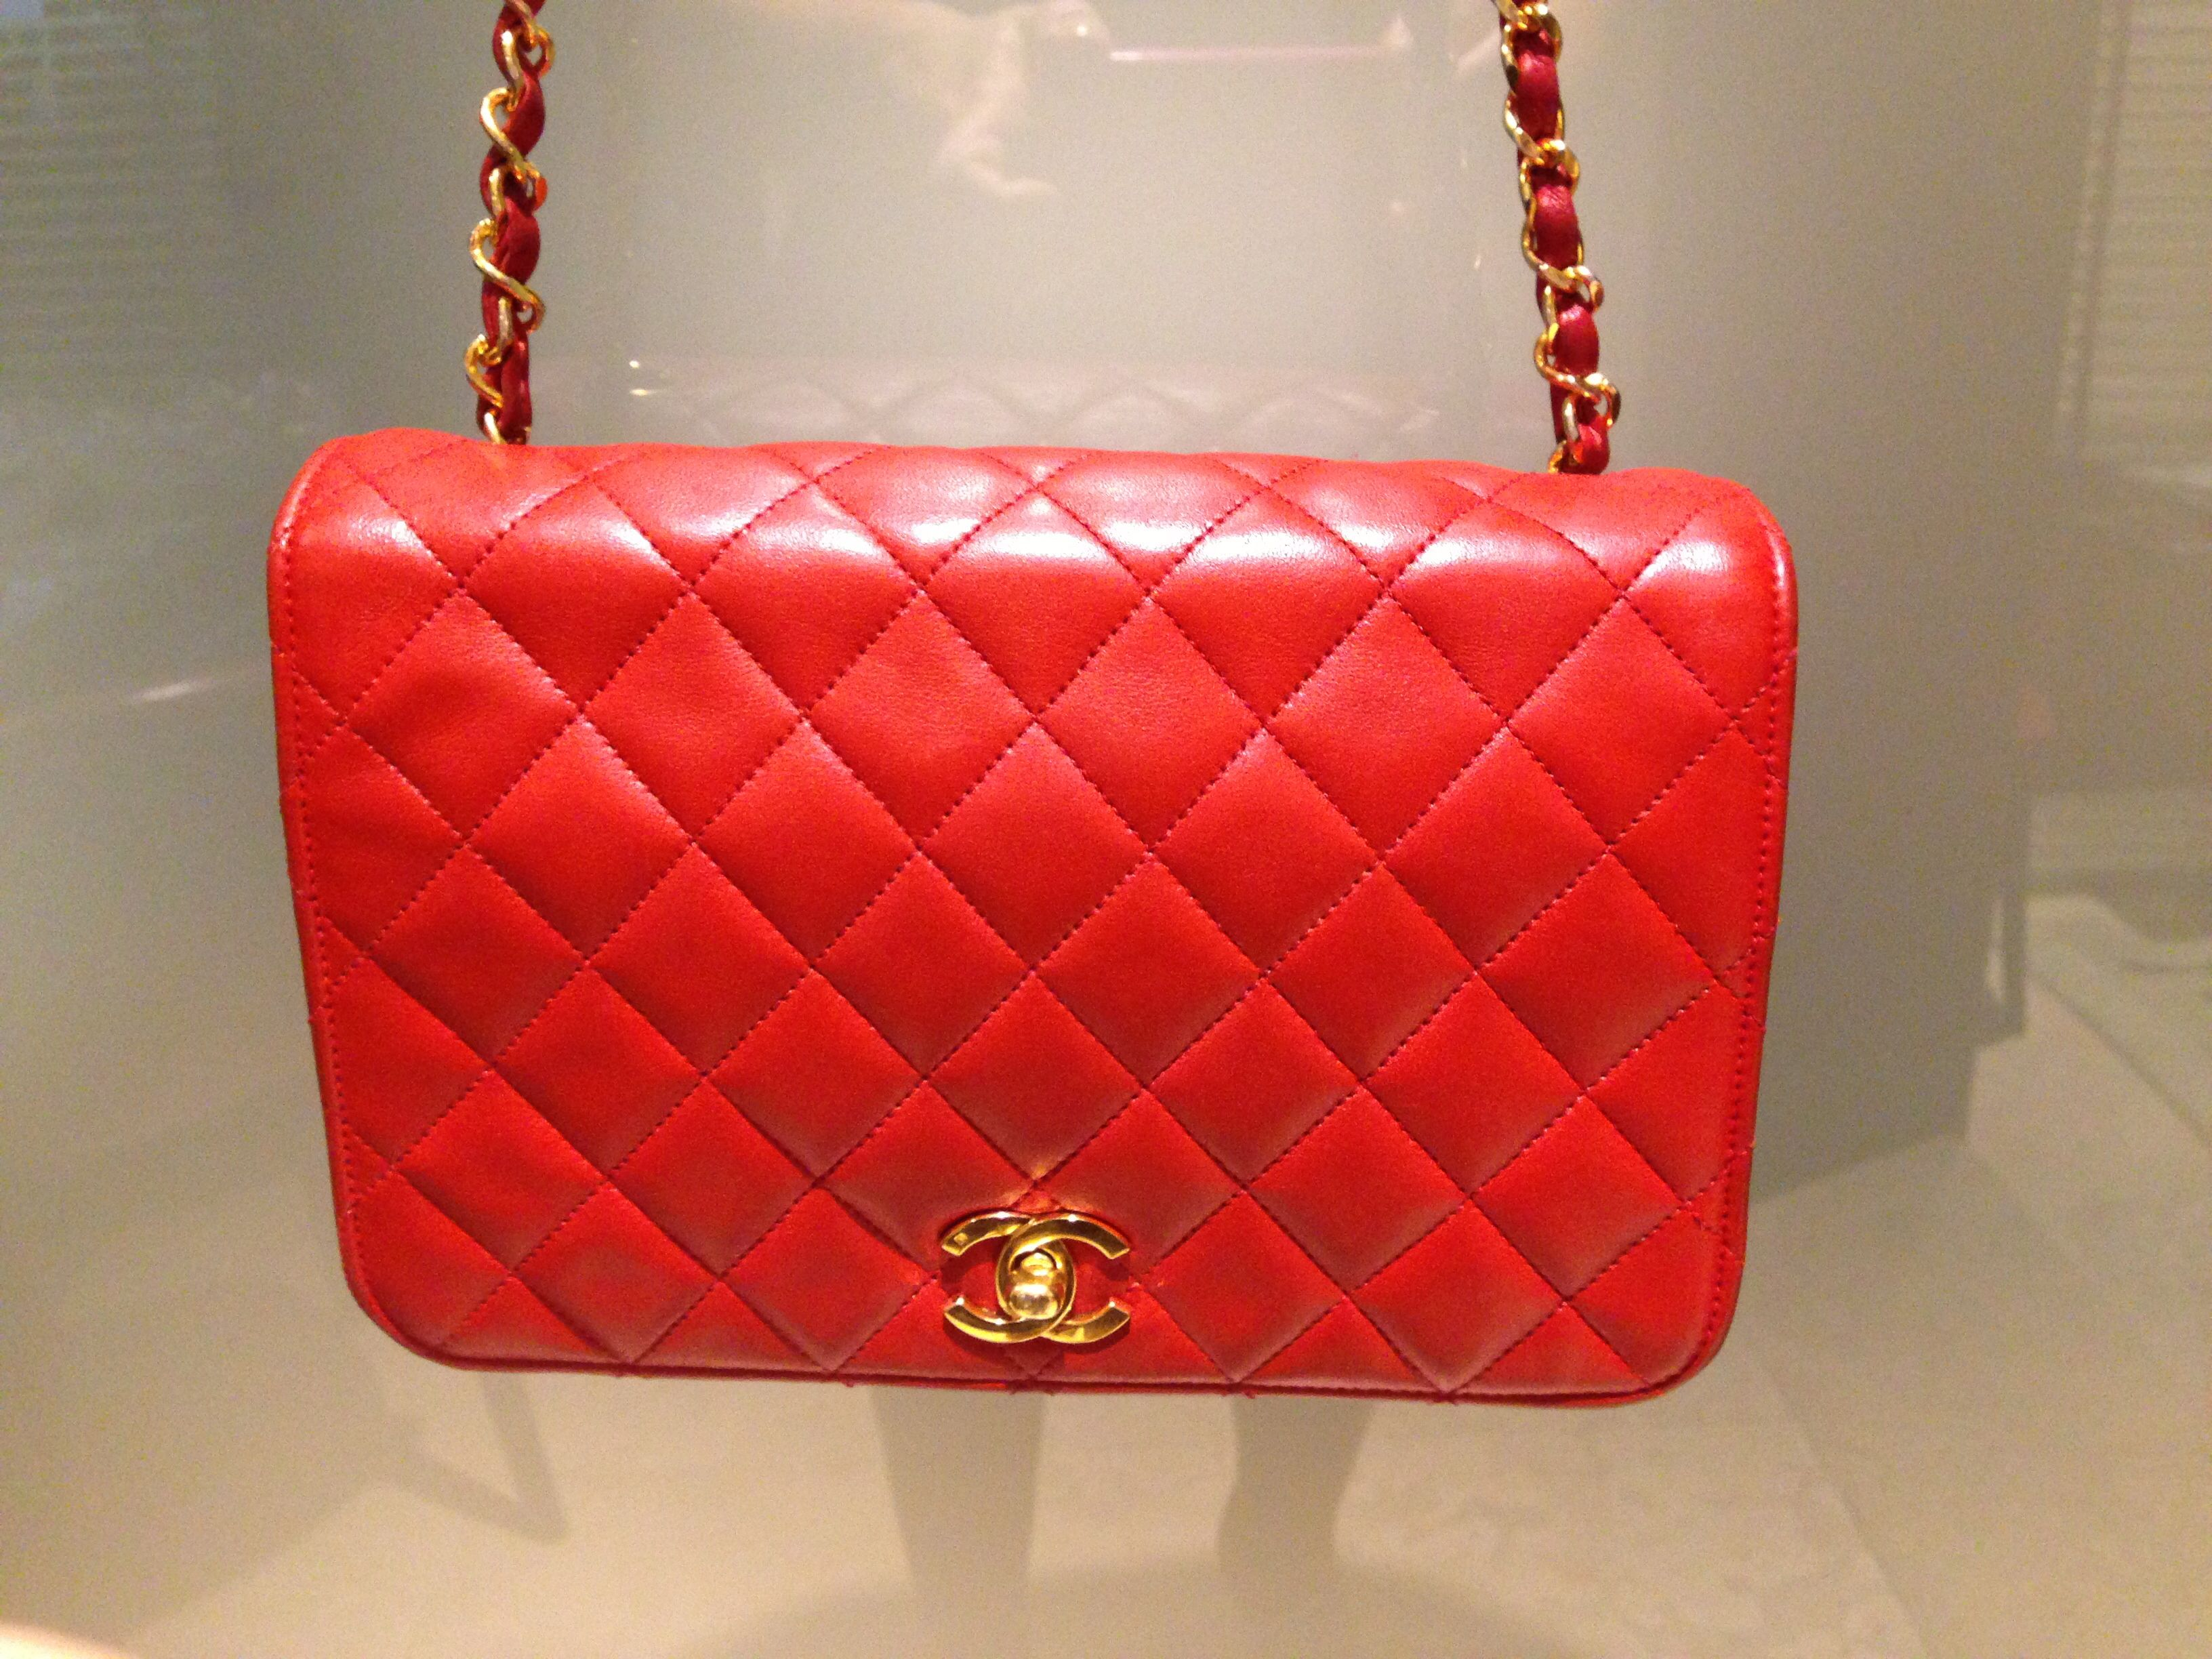 Vintage Chanel red diamond quilted lambskin mademoiselle bag with ... : chanel red quilted bag - Adamdwight.com